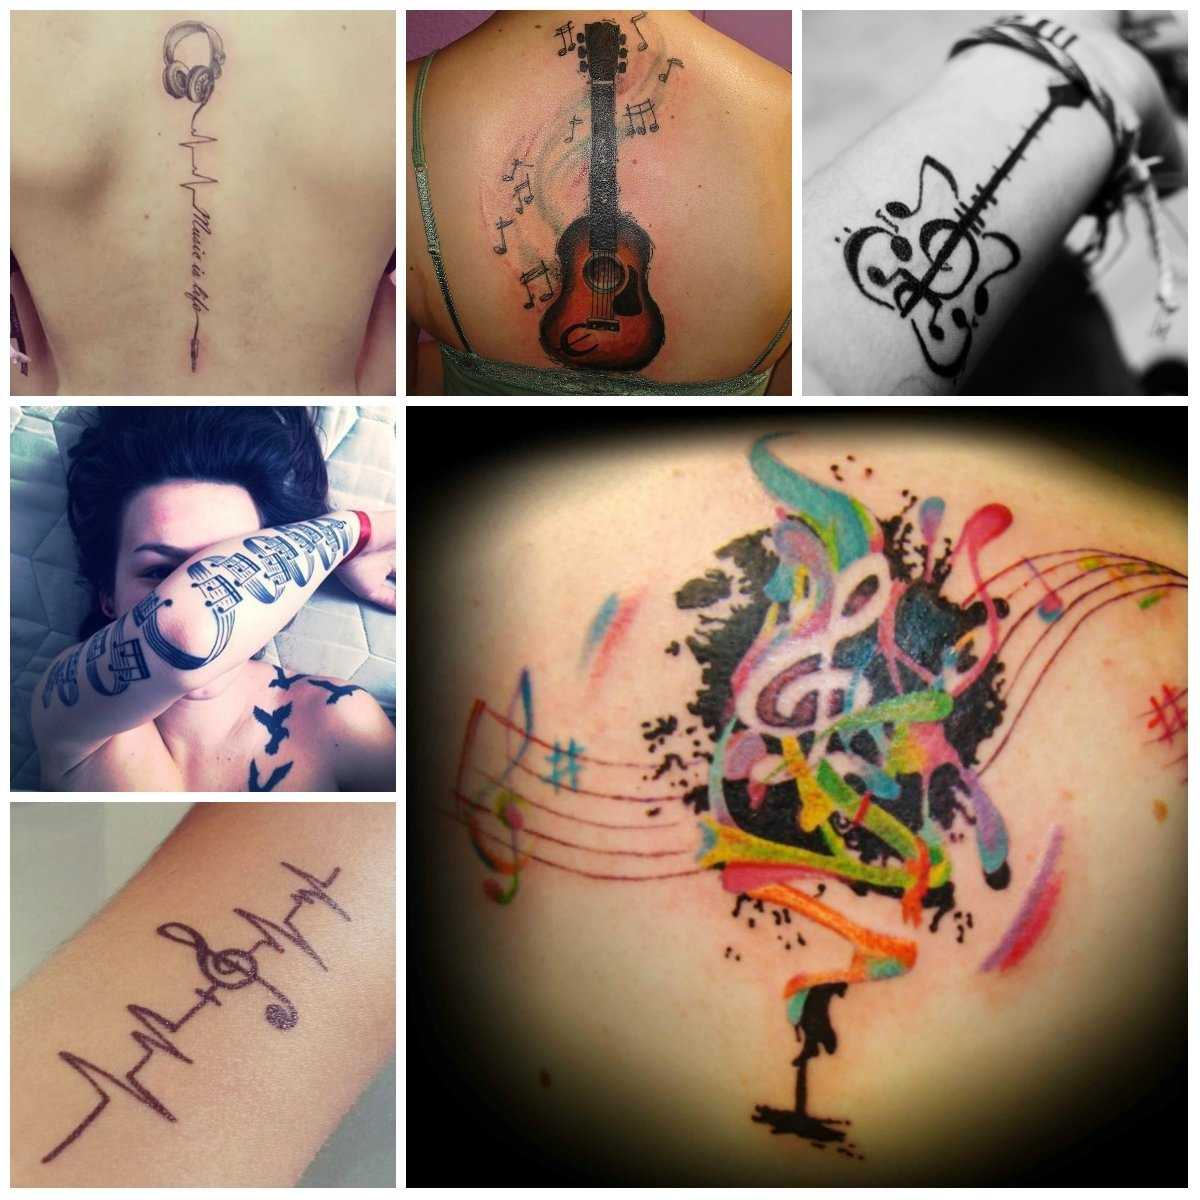 10 Stylish Music Tattoo Ideas For Men cool music tattoo designs 2016 tattoos pinterest music tattoos